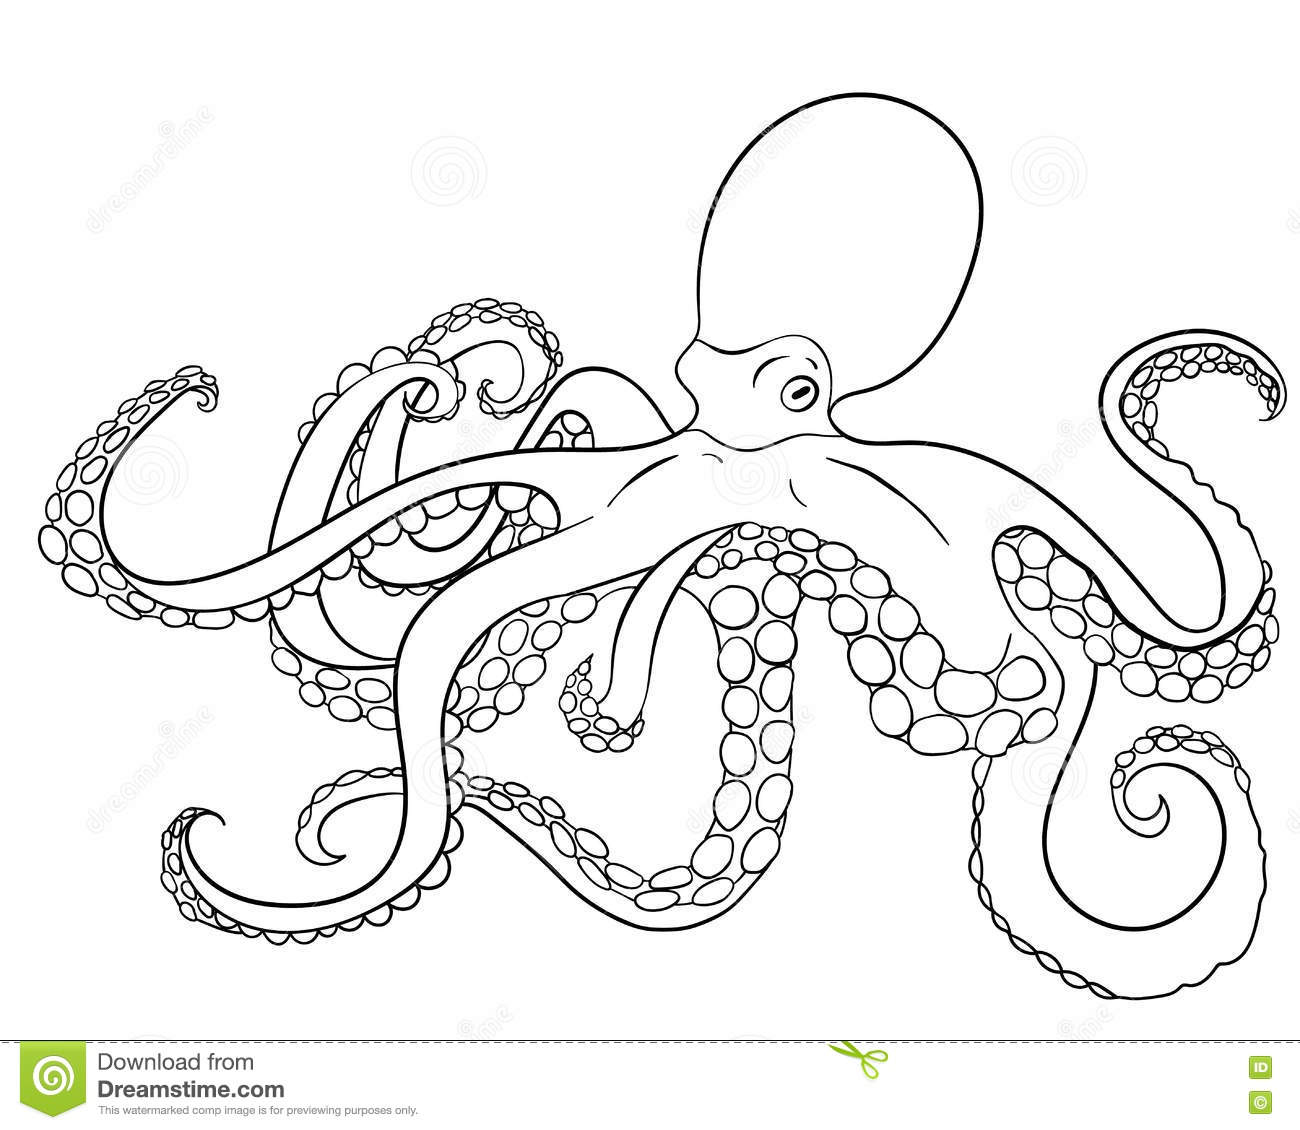 octopus with high details stock vector image 73355960